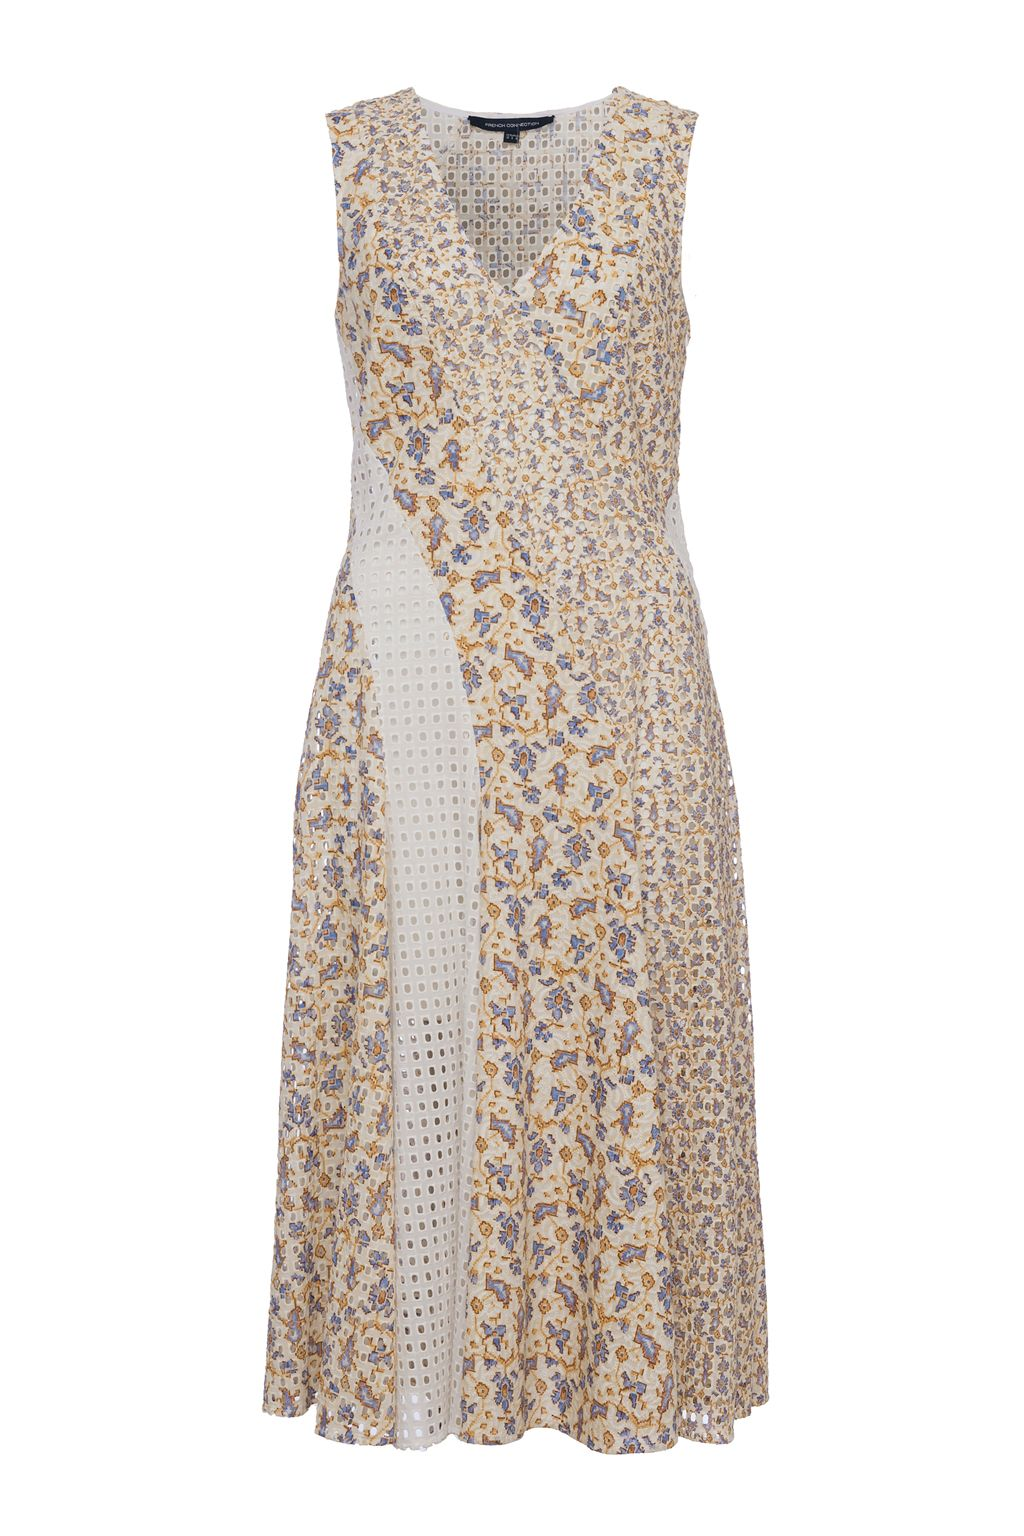 French Connection Niko Broderie Printed Cotton Dress, White